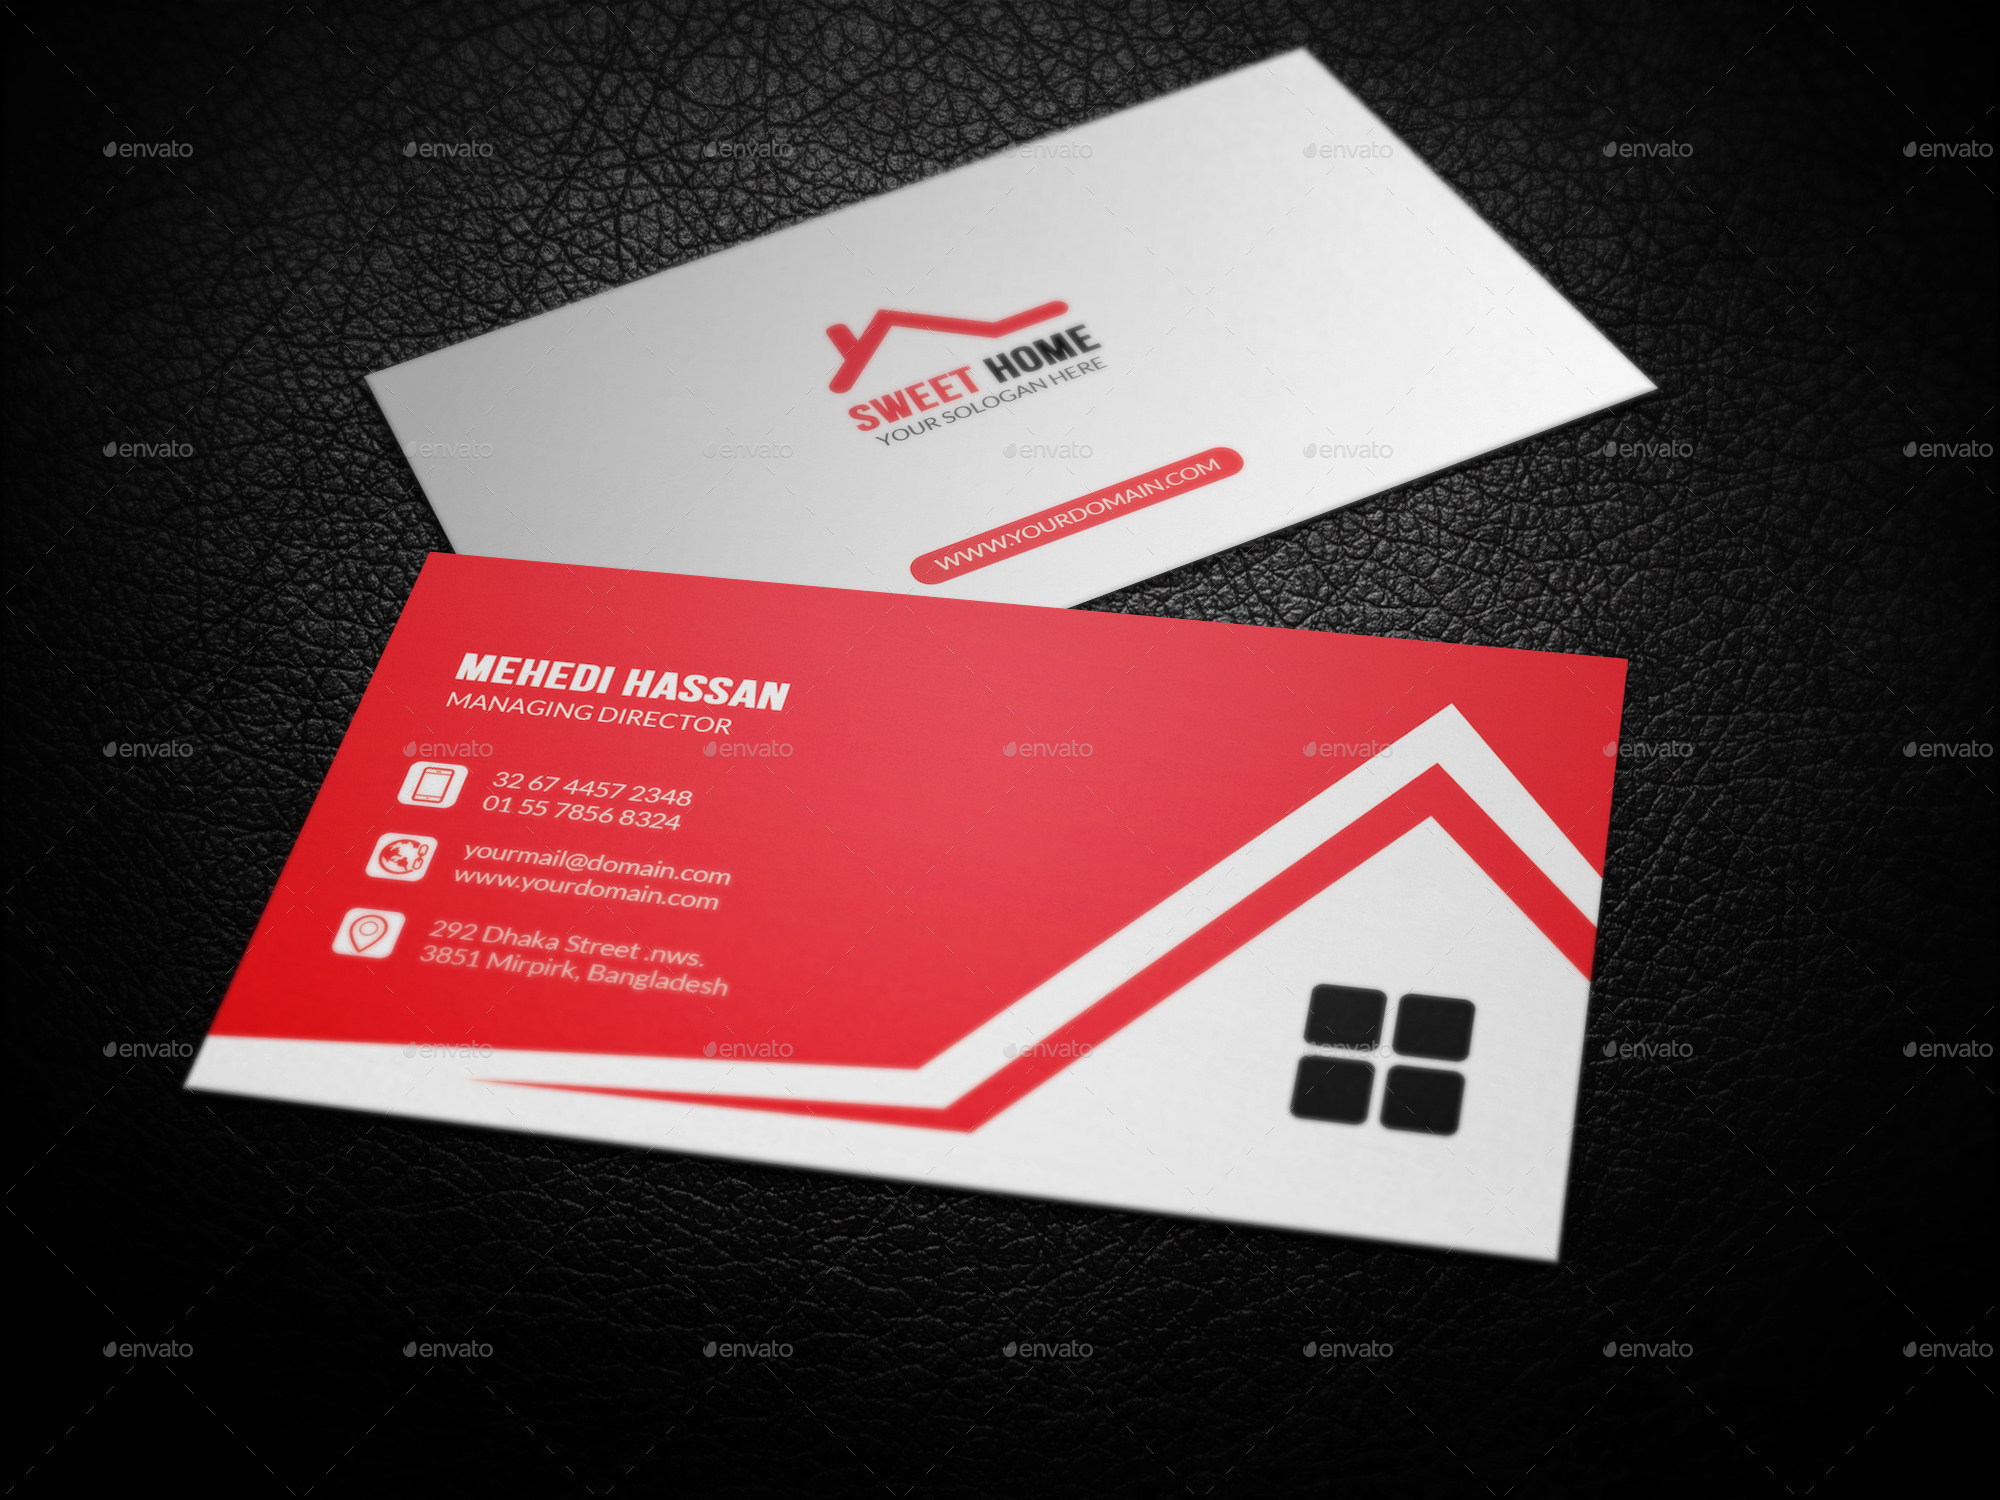 Real estate business card by mehedihassan graphicriver real estate business card industry specific business cards screenshot1g screenshot2g screenshot3g screenshot4g magicingreecefo Image collections